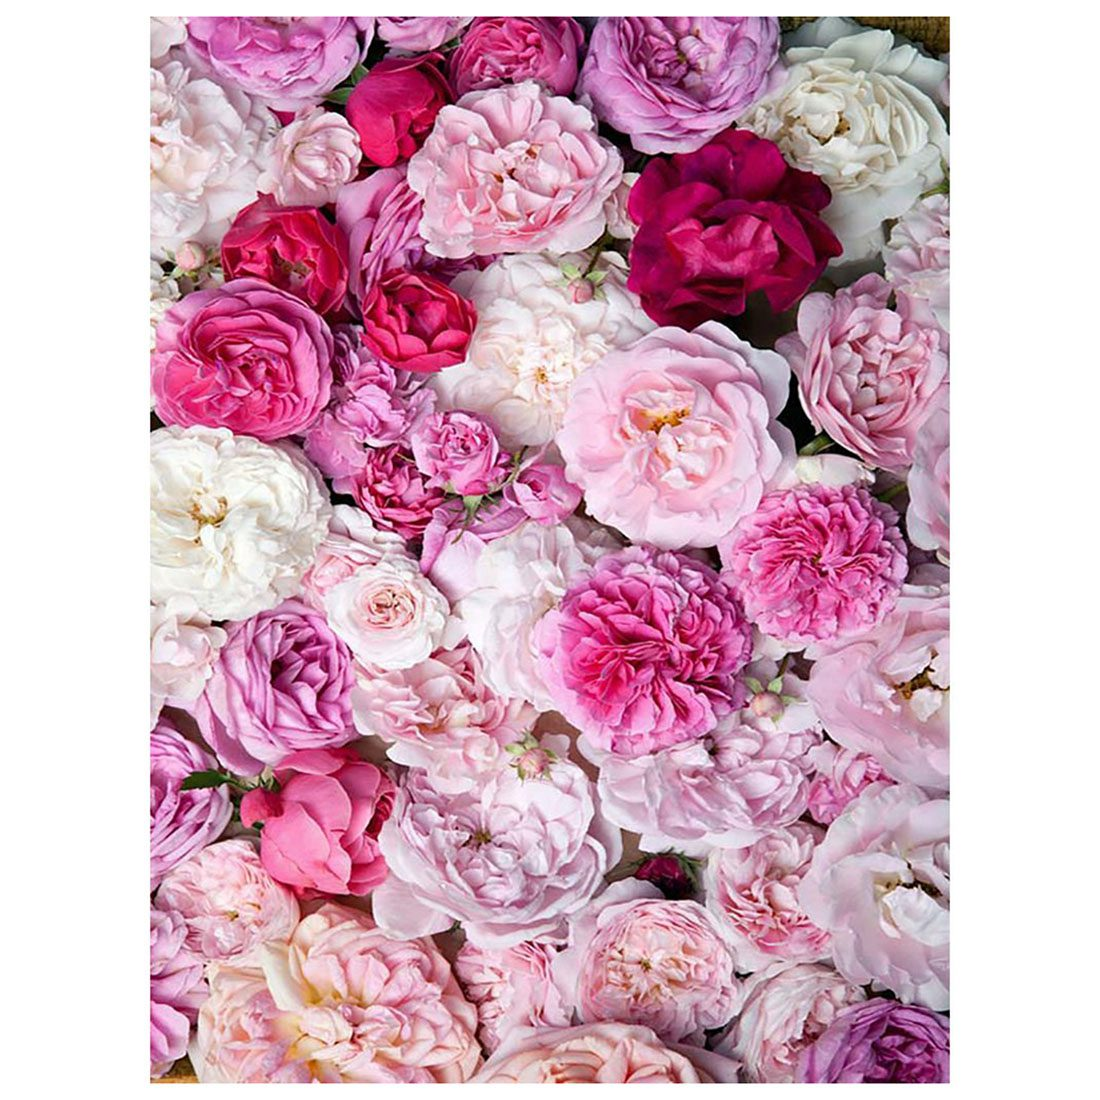 5x7ft Photography Backdrop Flower wall Pink White Valentine's Day baby shower children background photo studio photocall allenjoy photography backdrop brick wall wooden floor white baby shower children background photo studio photocall